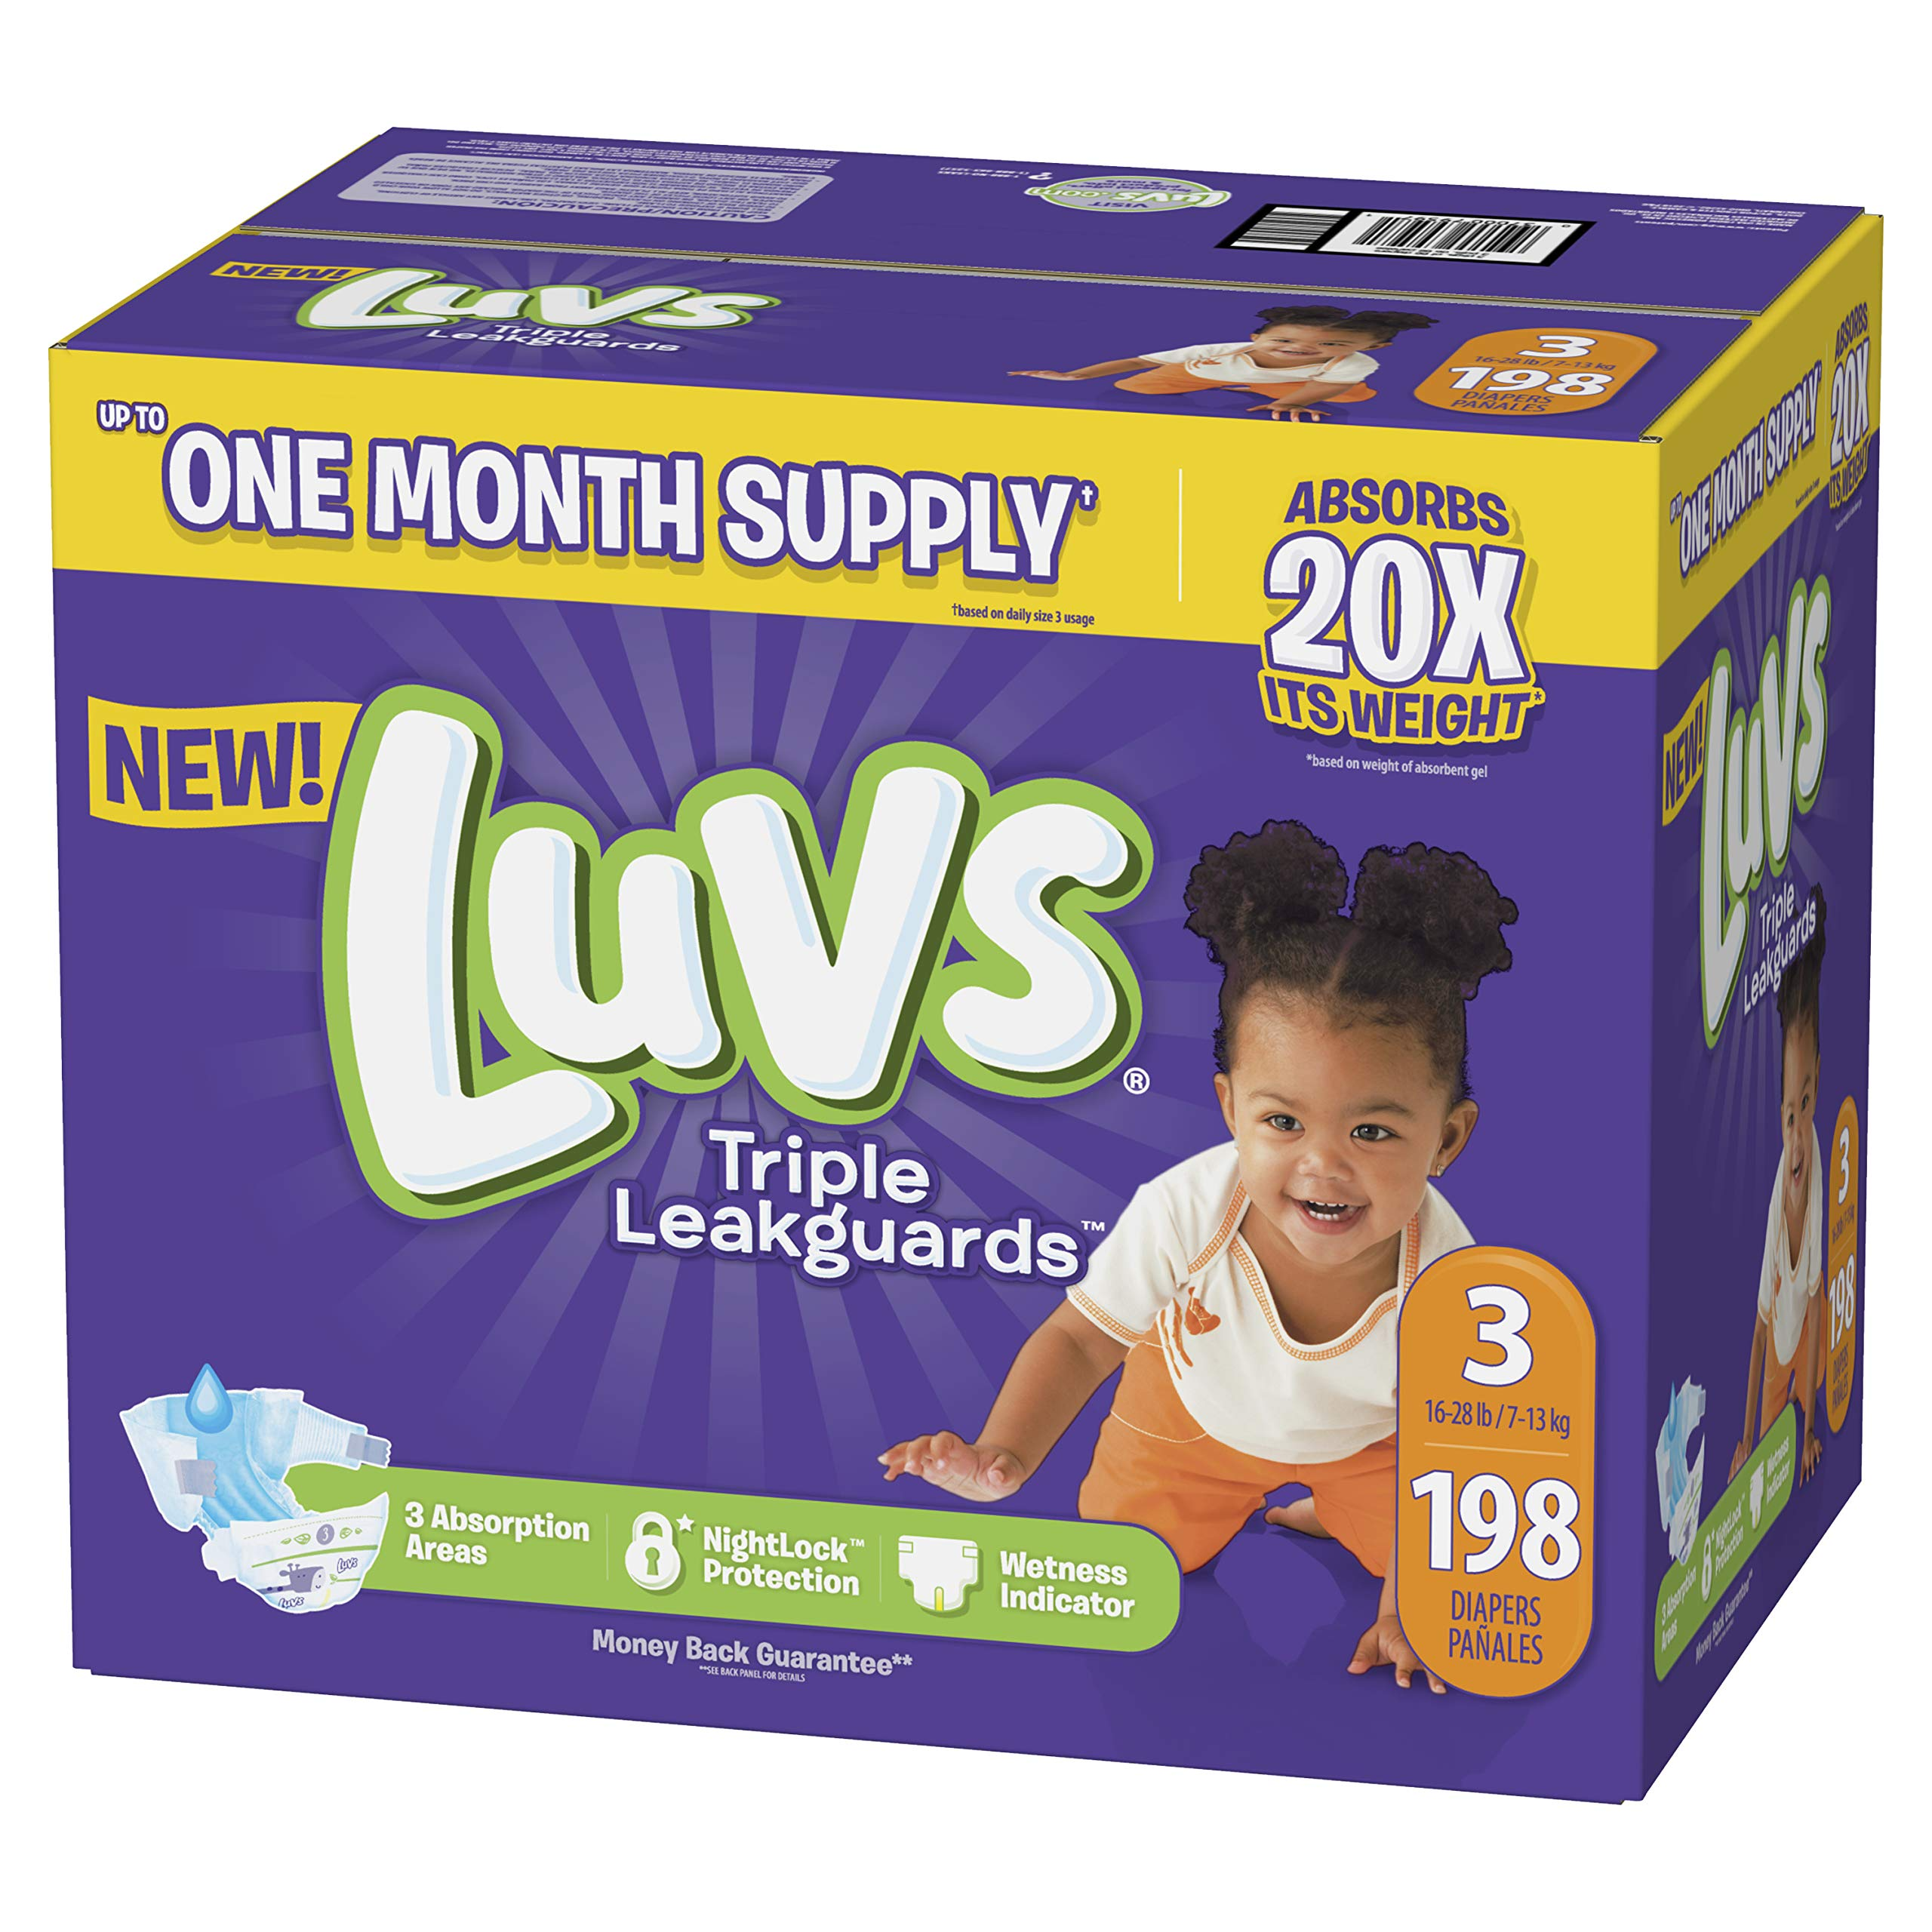 Diapers Size 3, 198 Count - Luvs Ultra Leakguards ...